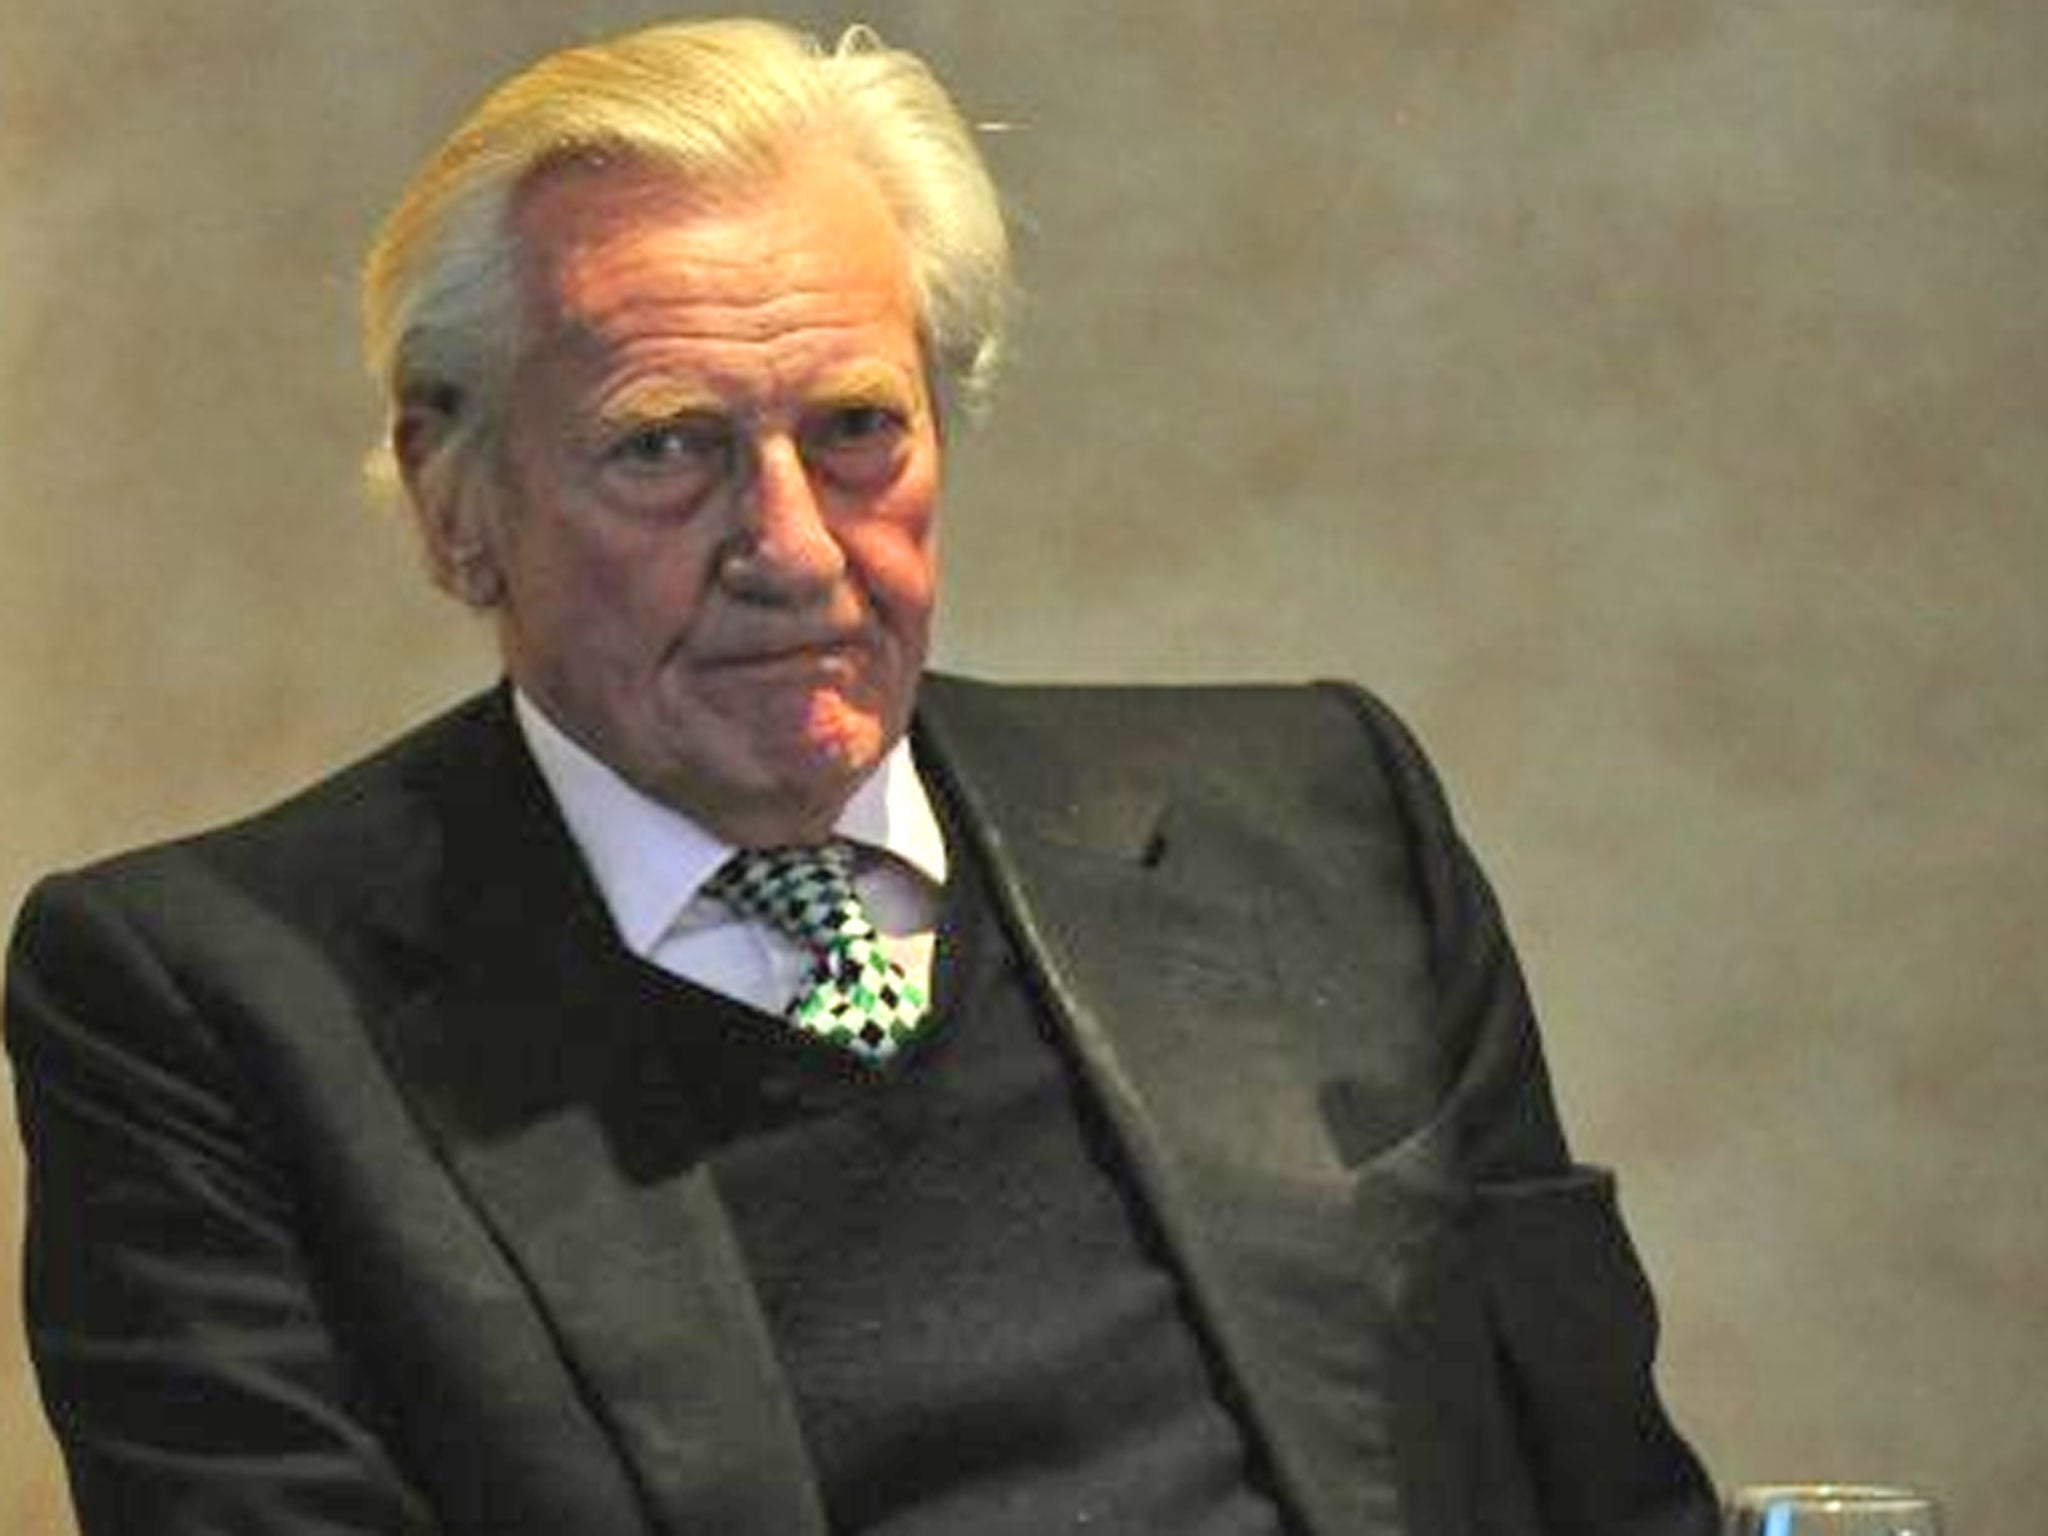 Brexit: UK won't leave the EU and will one day join the Euro, says Lord Heseltine